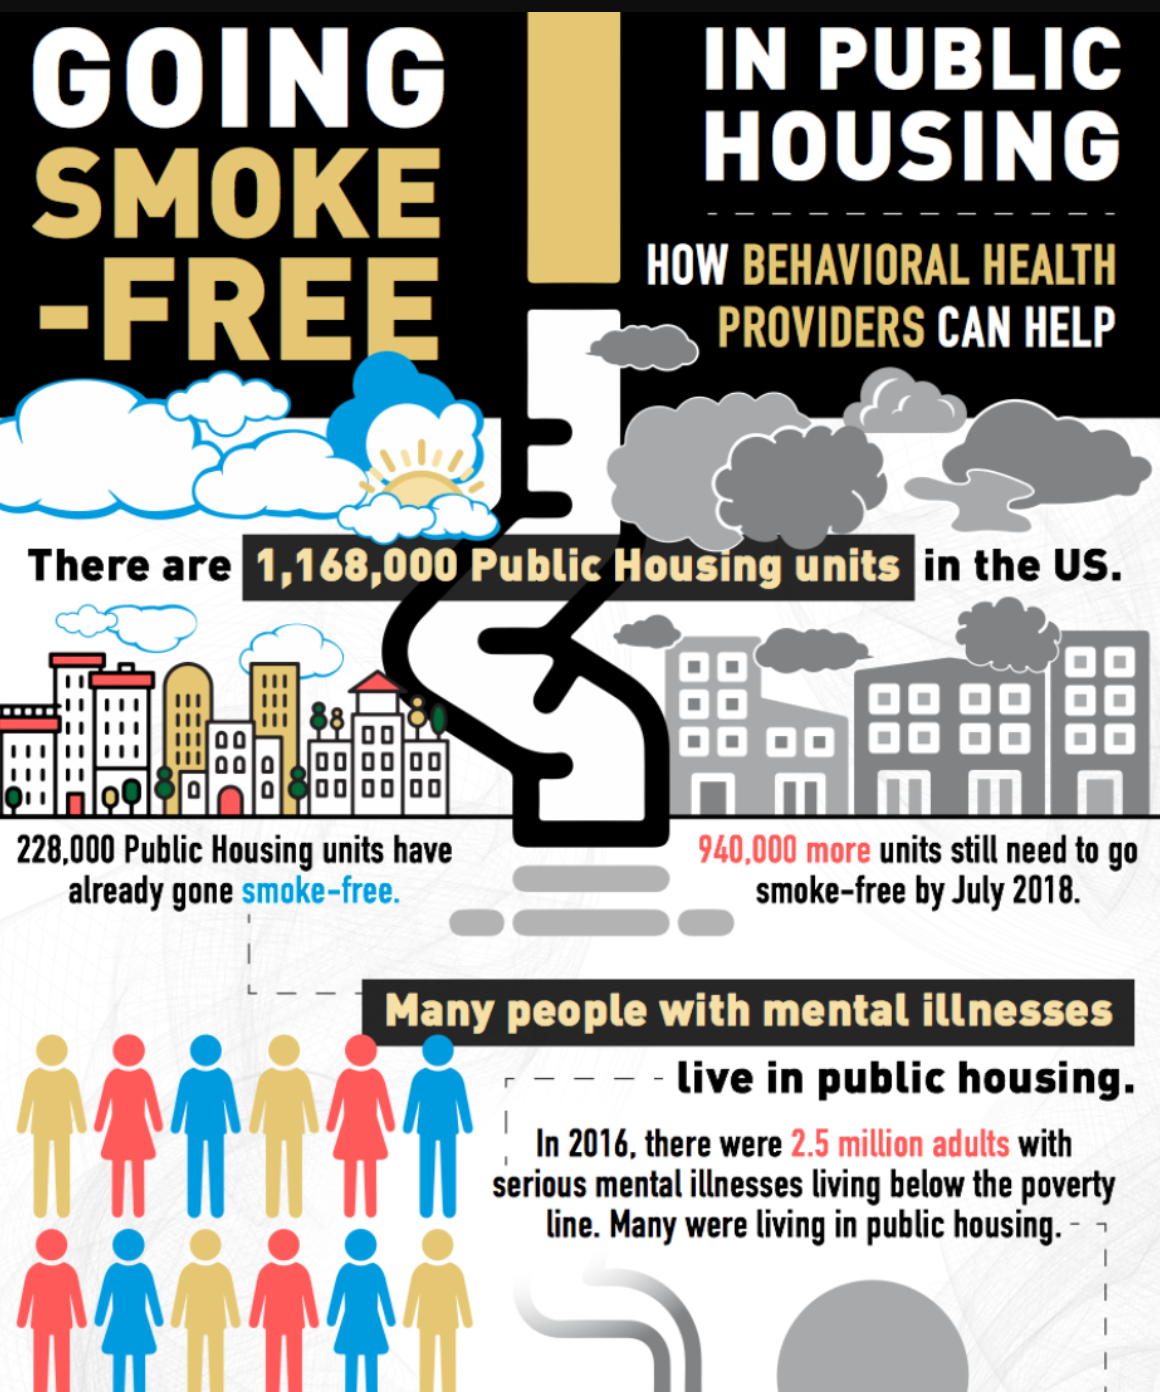 Going Smoke-Free in Public Housing